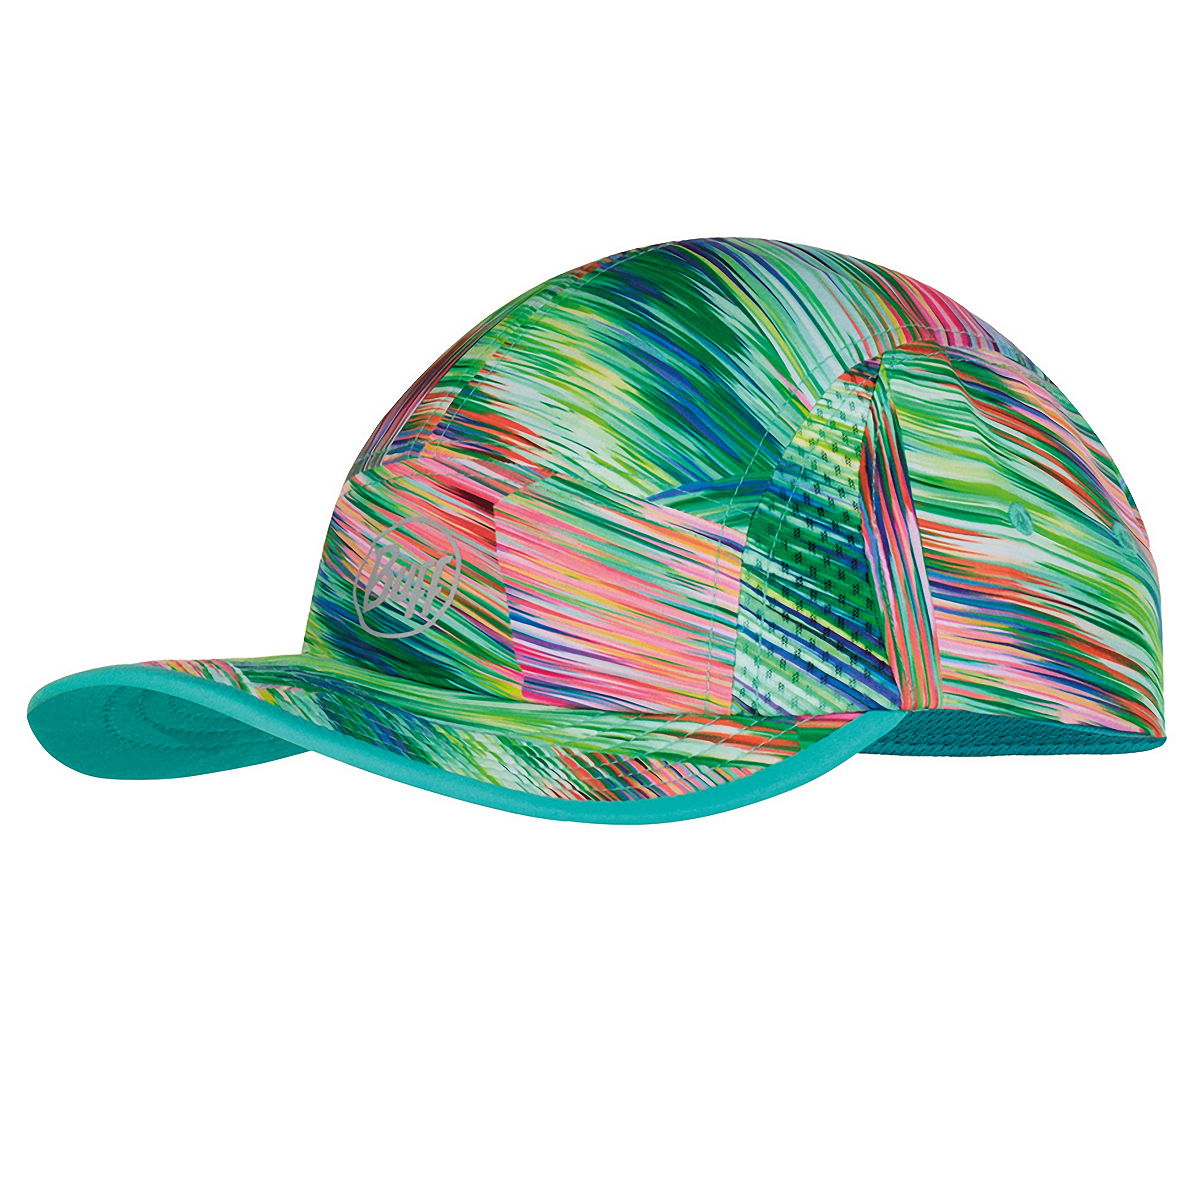 Buff Run Cap - Color: Jayla, Jayla, large, image 1